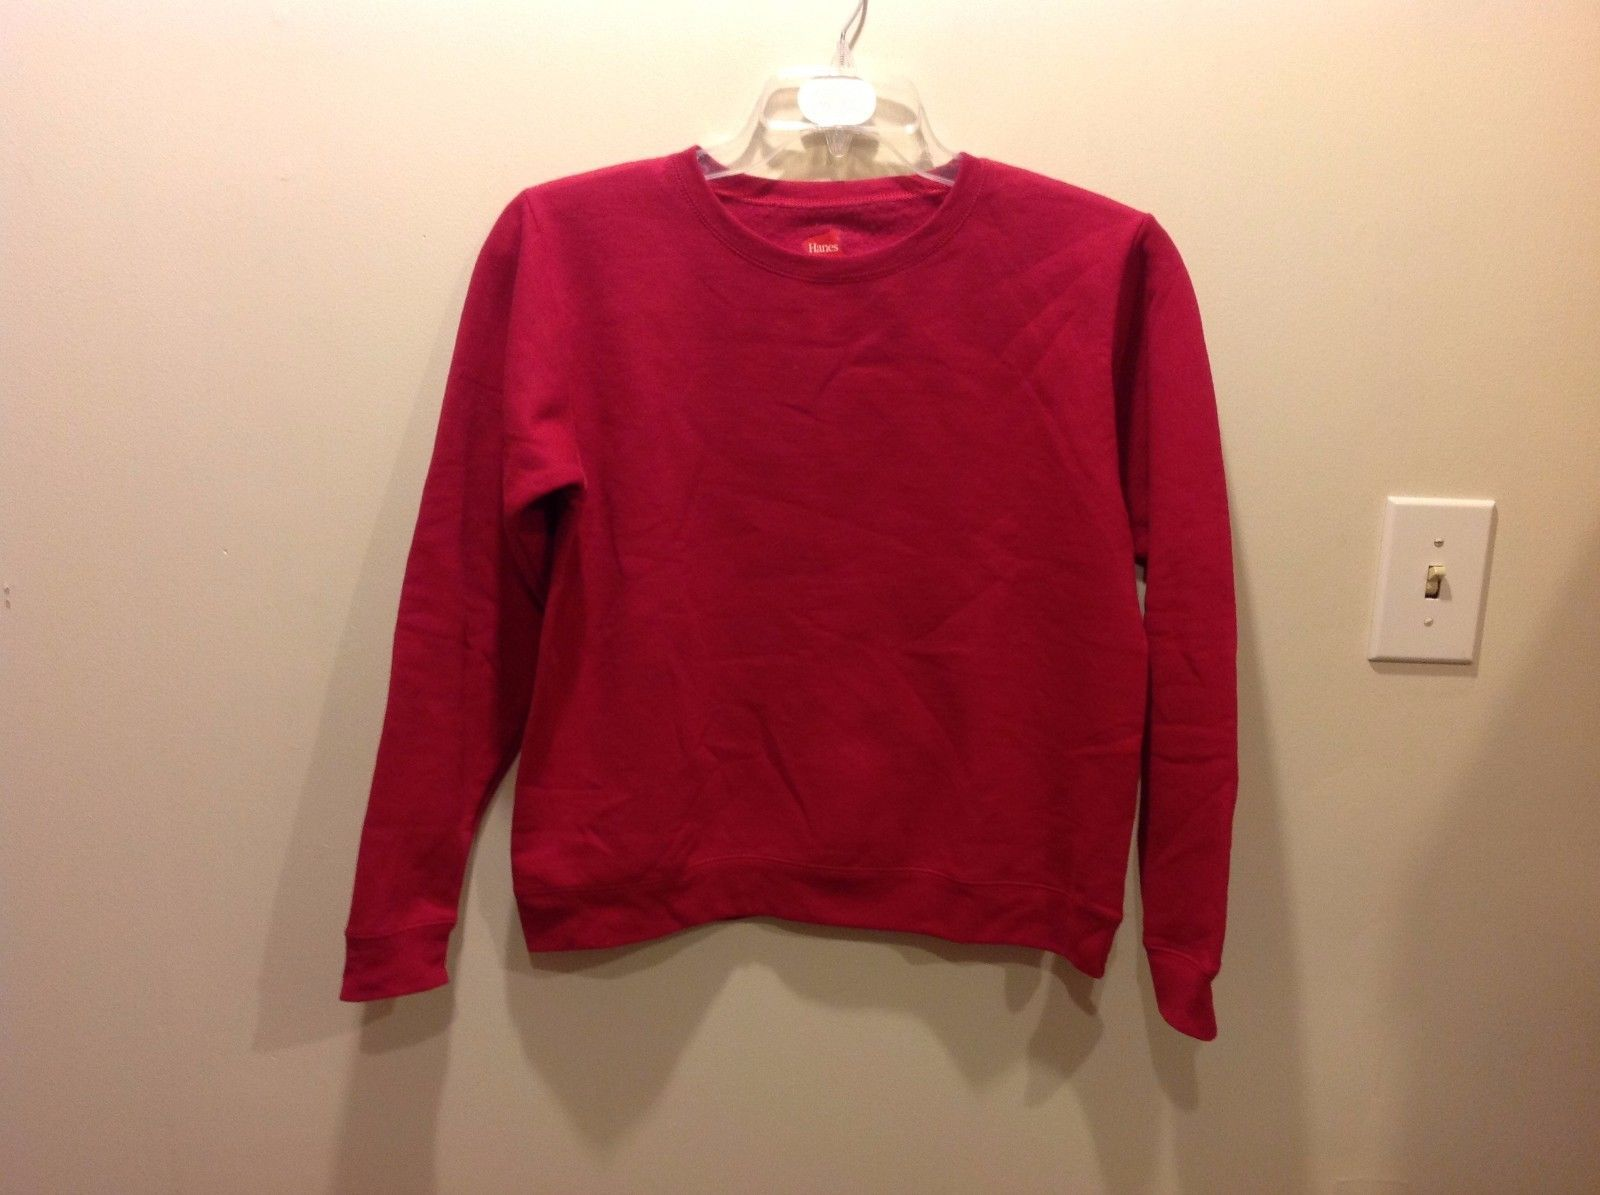 Deep Pink Simple Cozy Sweater by HANES Comfortblend XL